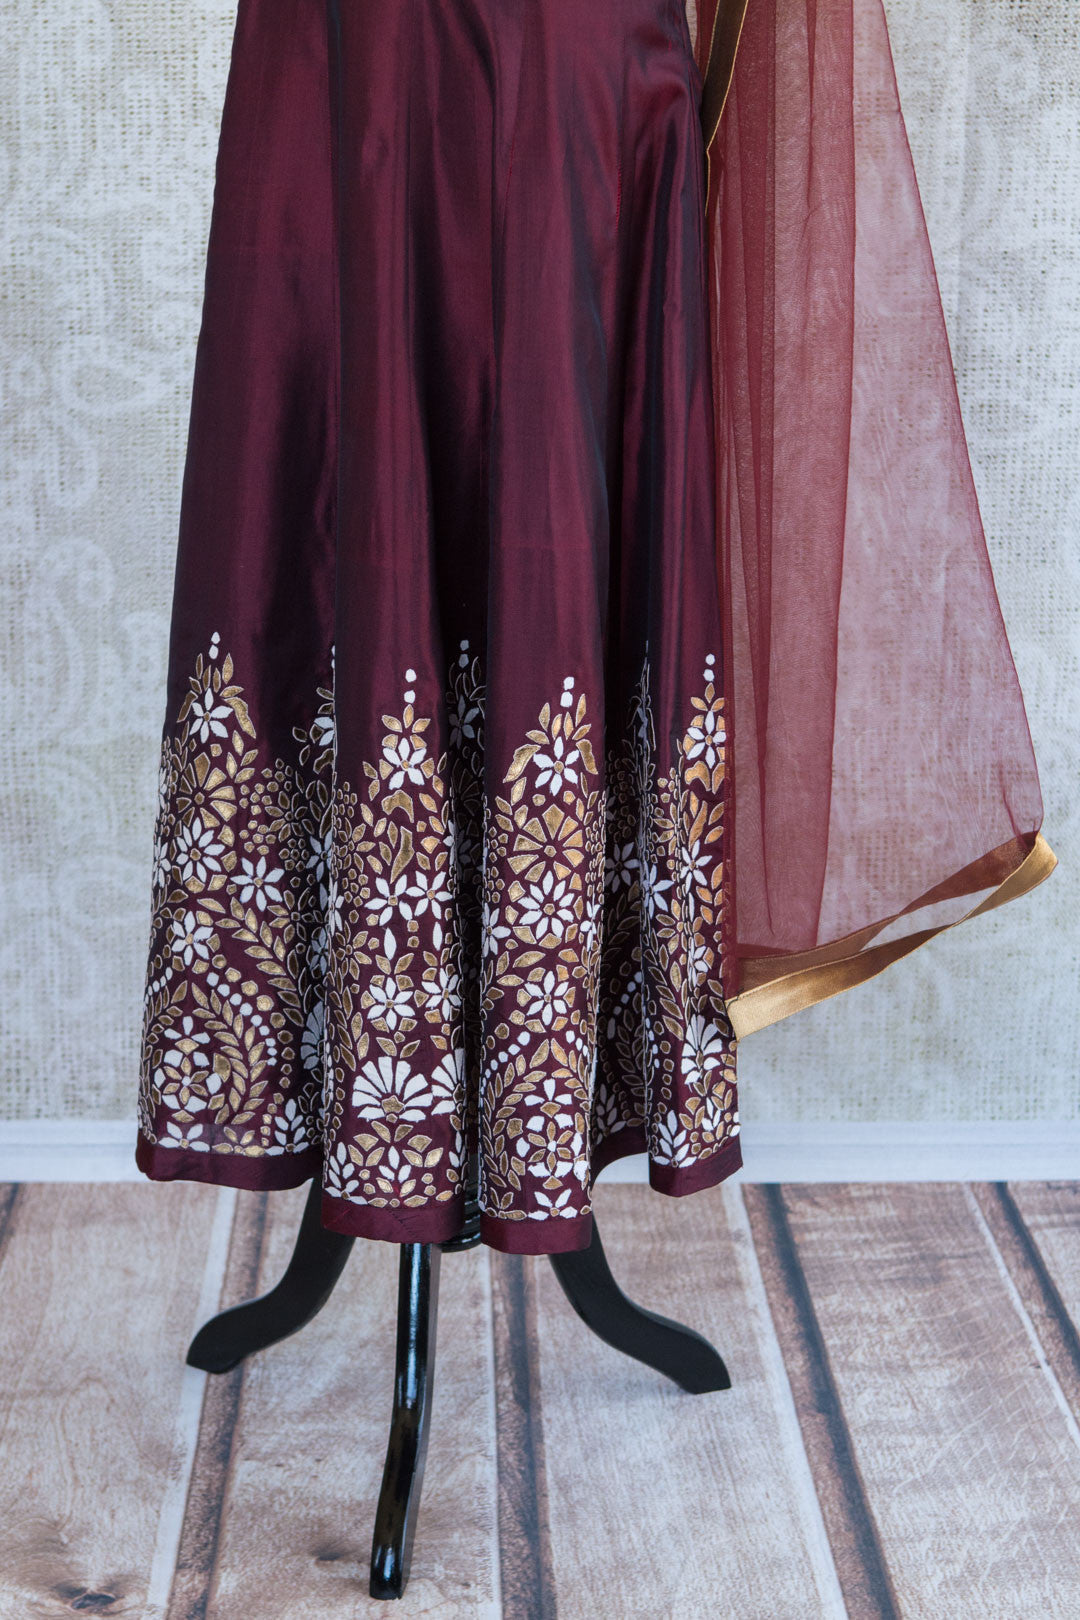 501085-suit-sleeveless-maroon-gold-embroidery-scarf-skirt-view